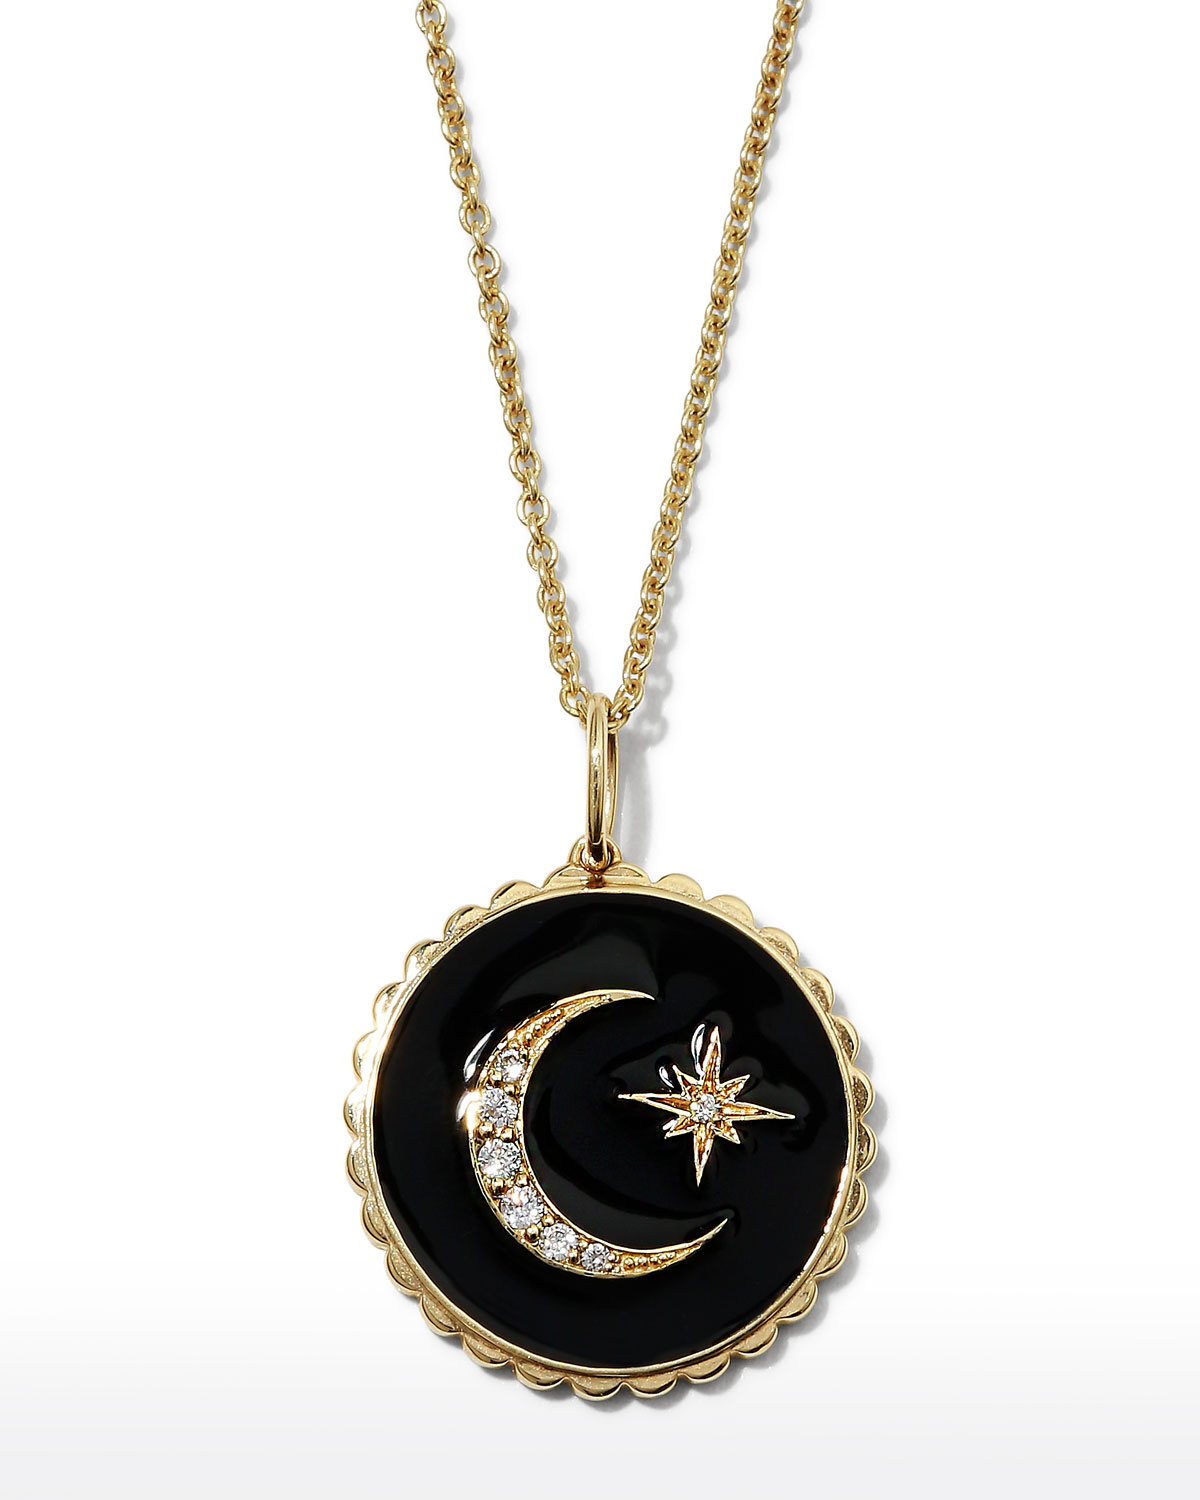 Sydney Evan 14k Black Celestial Medallion Necklace w/ Diamonds